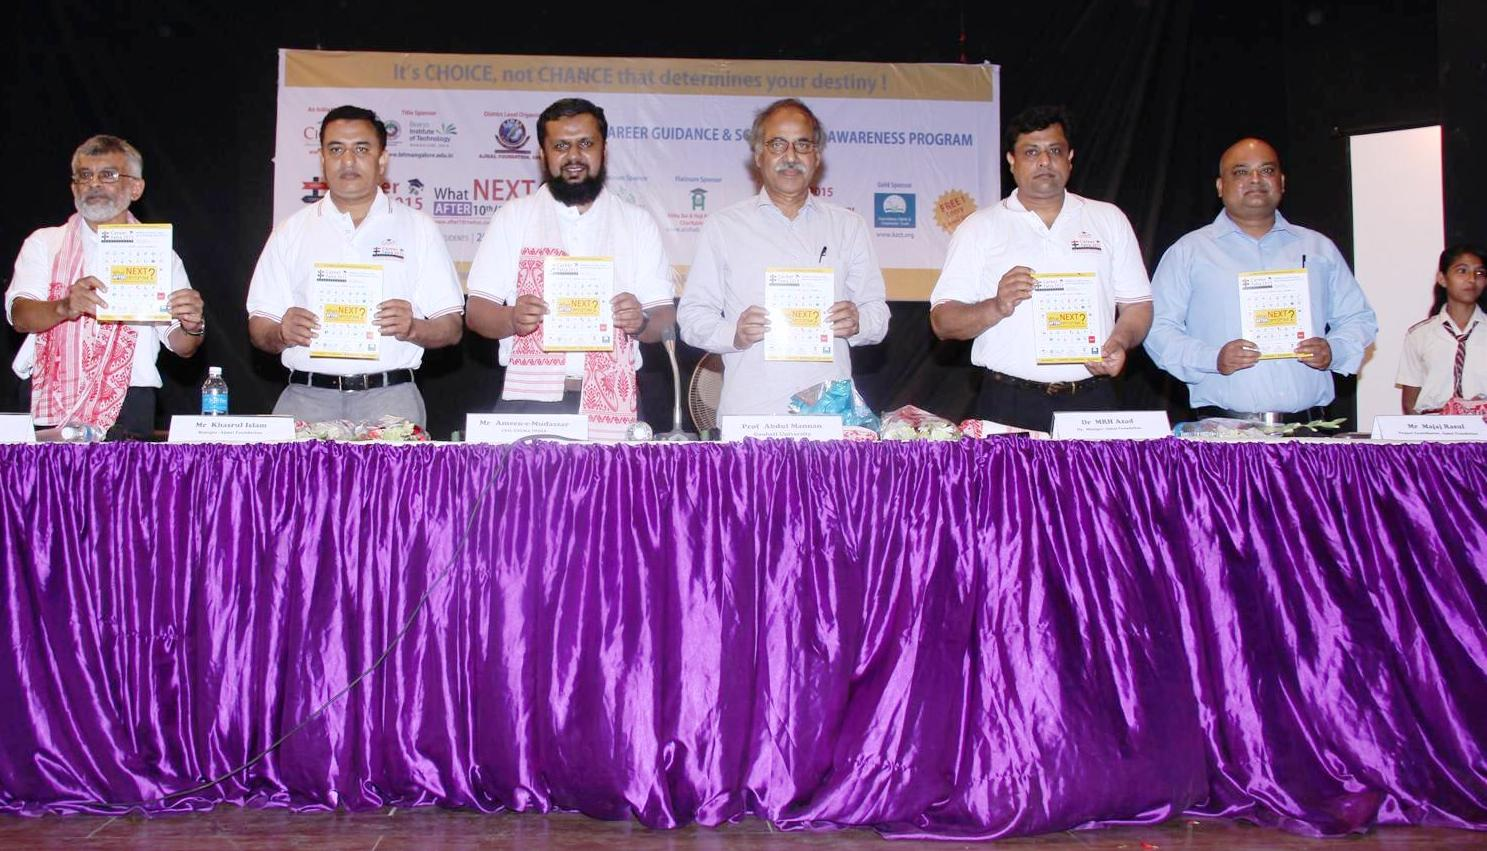 Dignitaries on the dais unveiling a book on career guidance at the Career Yatra 2015 programme held at the Veterinary Science College Auditorium in Guwahati on Tuesday.